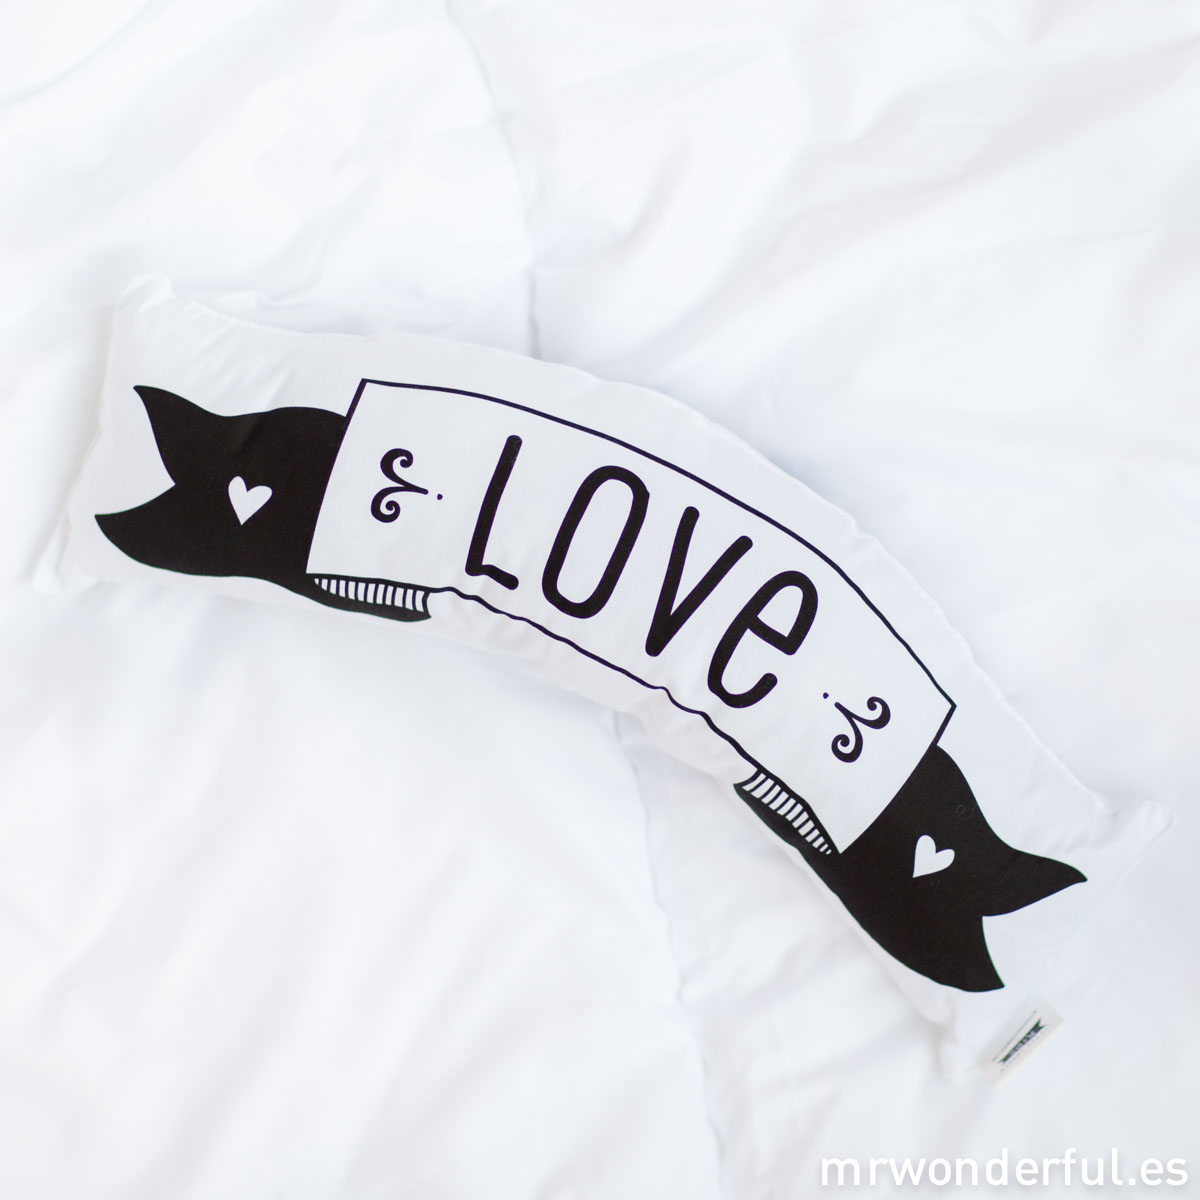 mrwonderful_PRA02779_LICW003_little-lovely_cojin_love-dream_2016-4-Editar